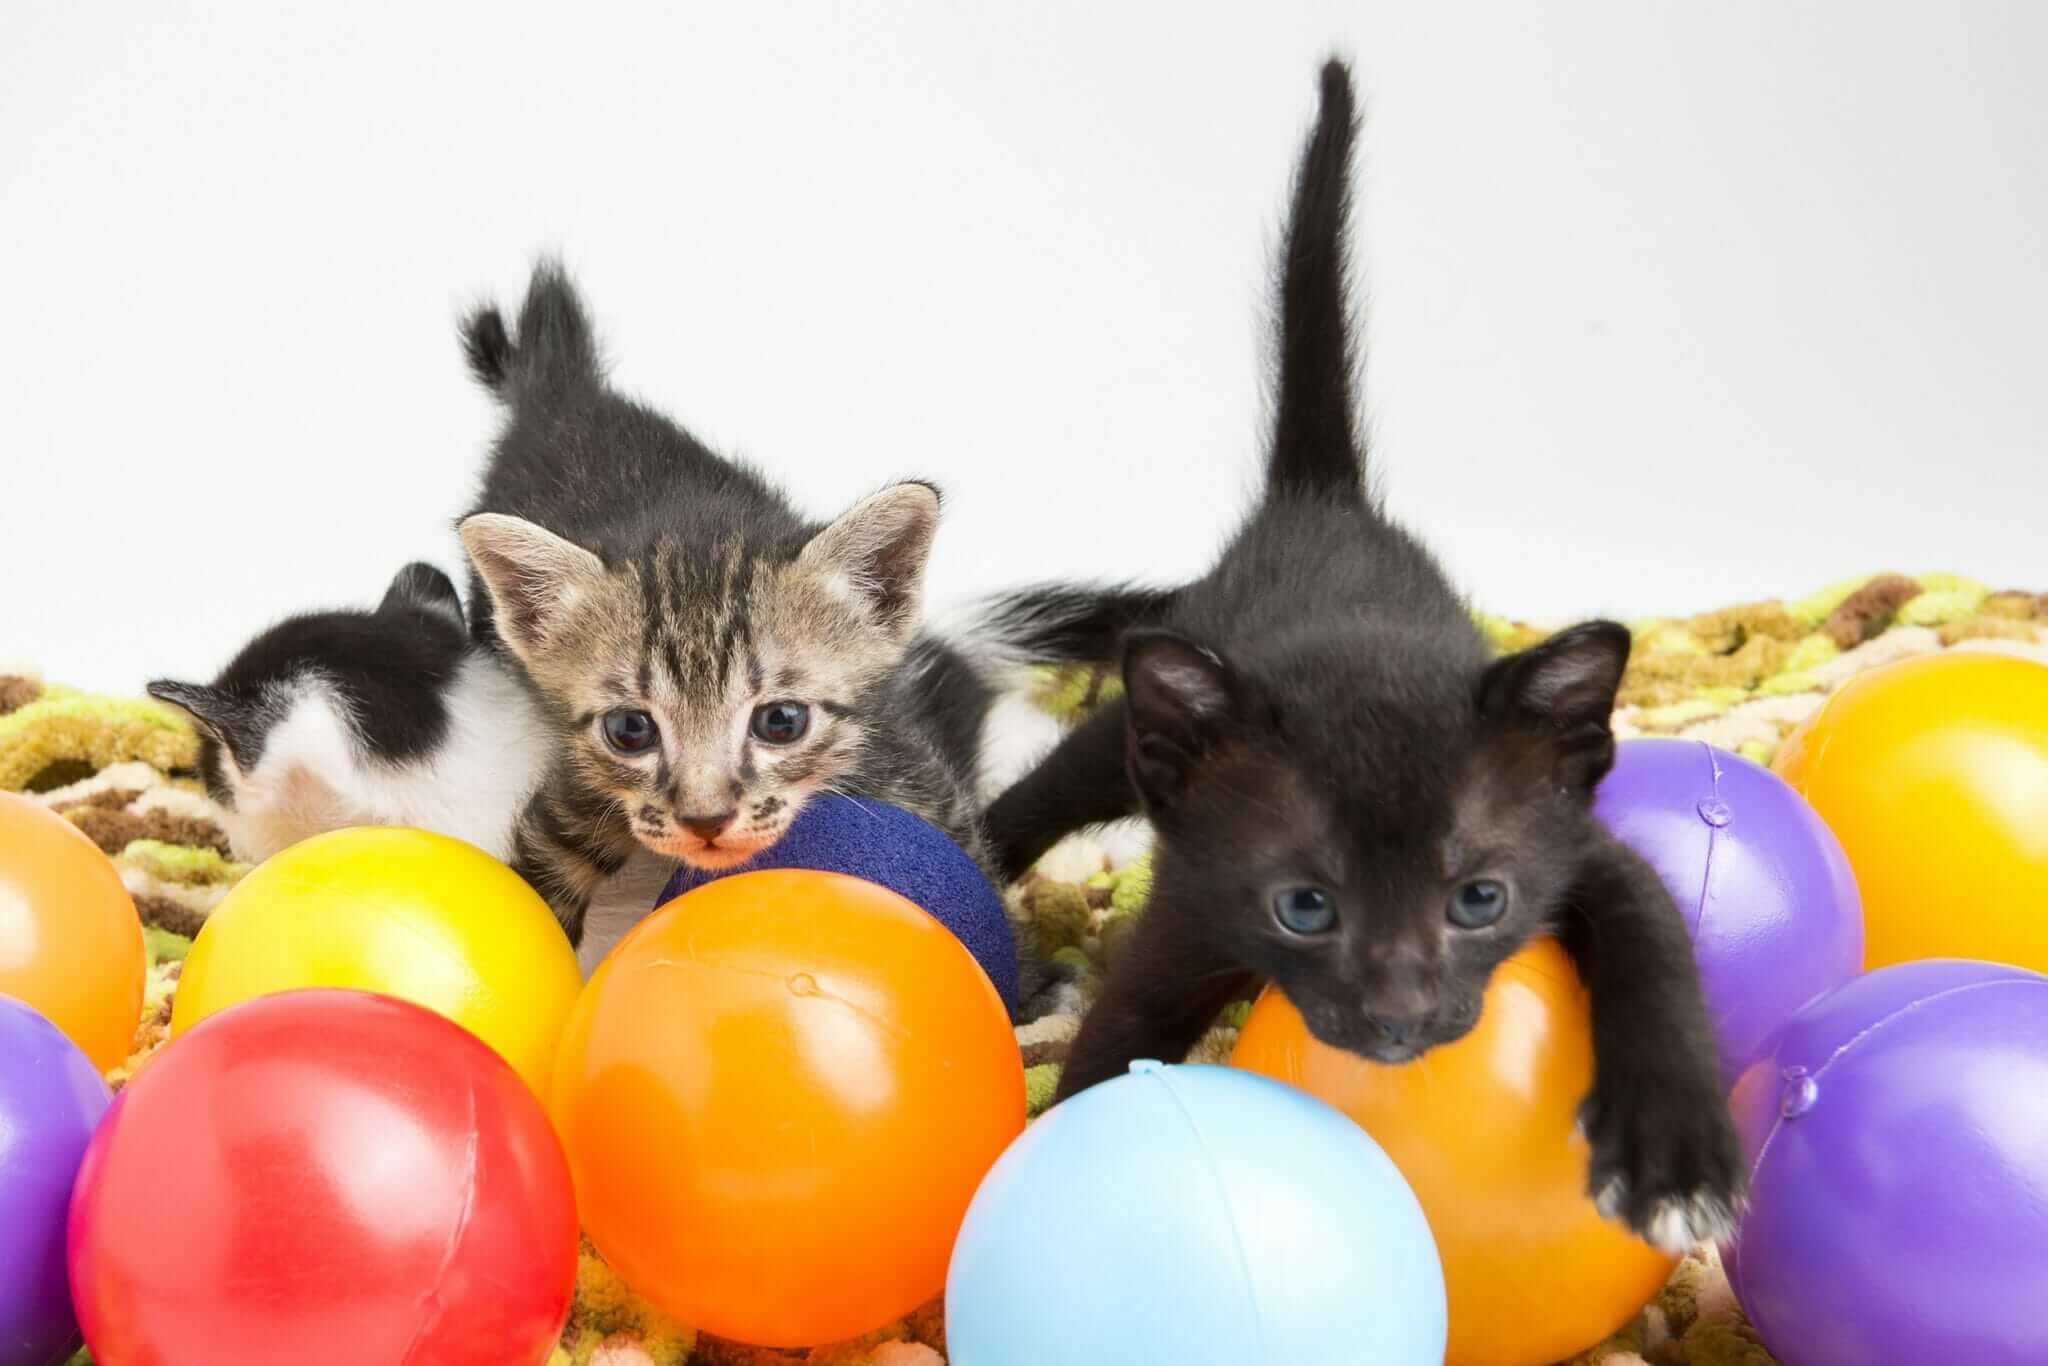 Choosing the Best Kitten Food for Your Kitten